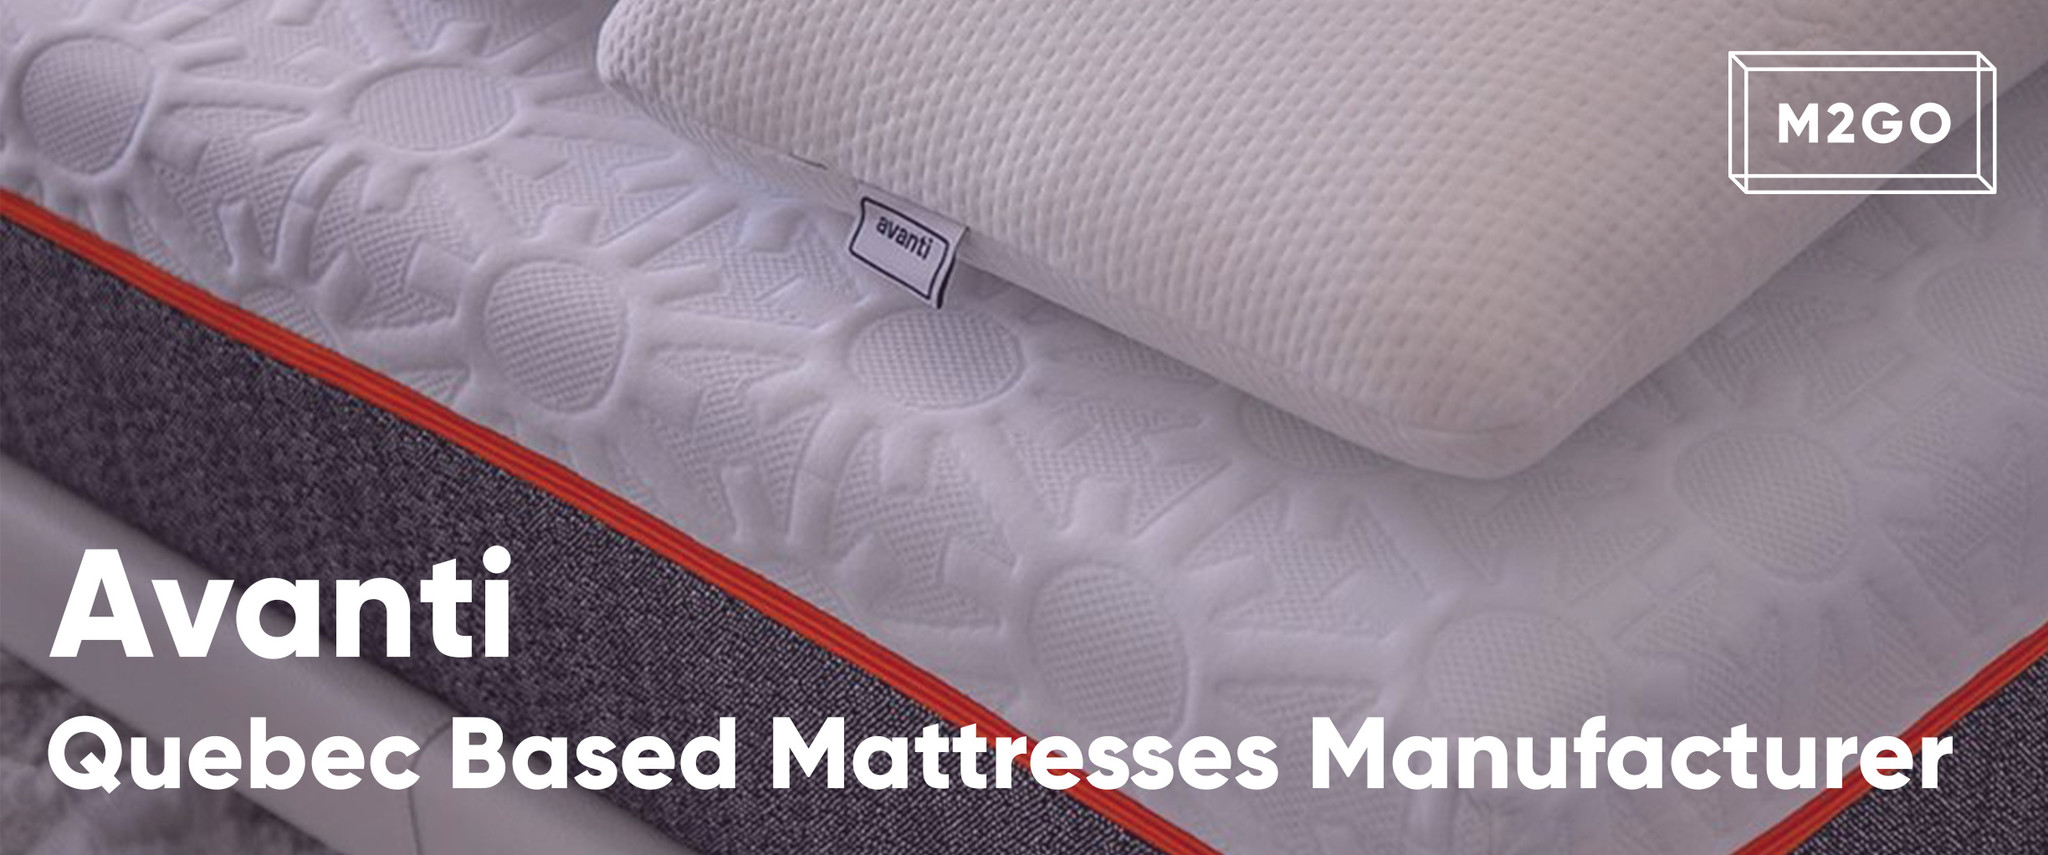 Avanti : Quebec Based Mattresses Manufacturers